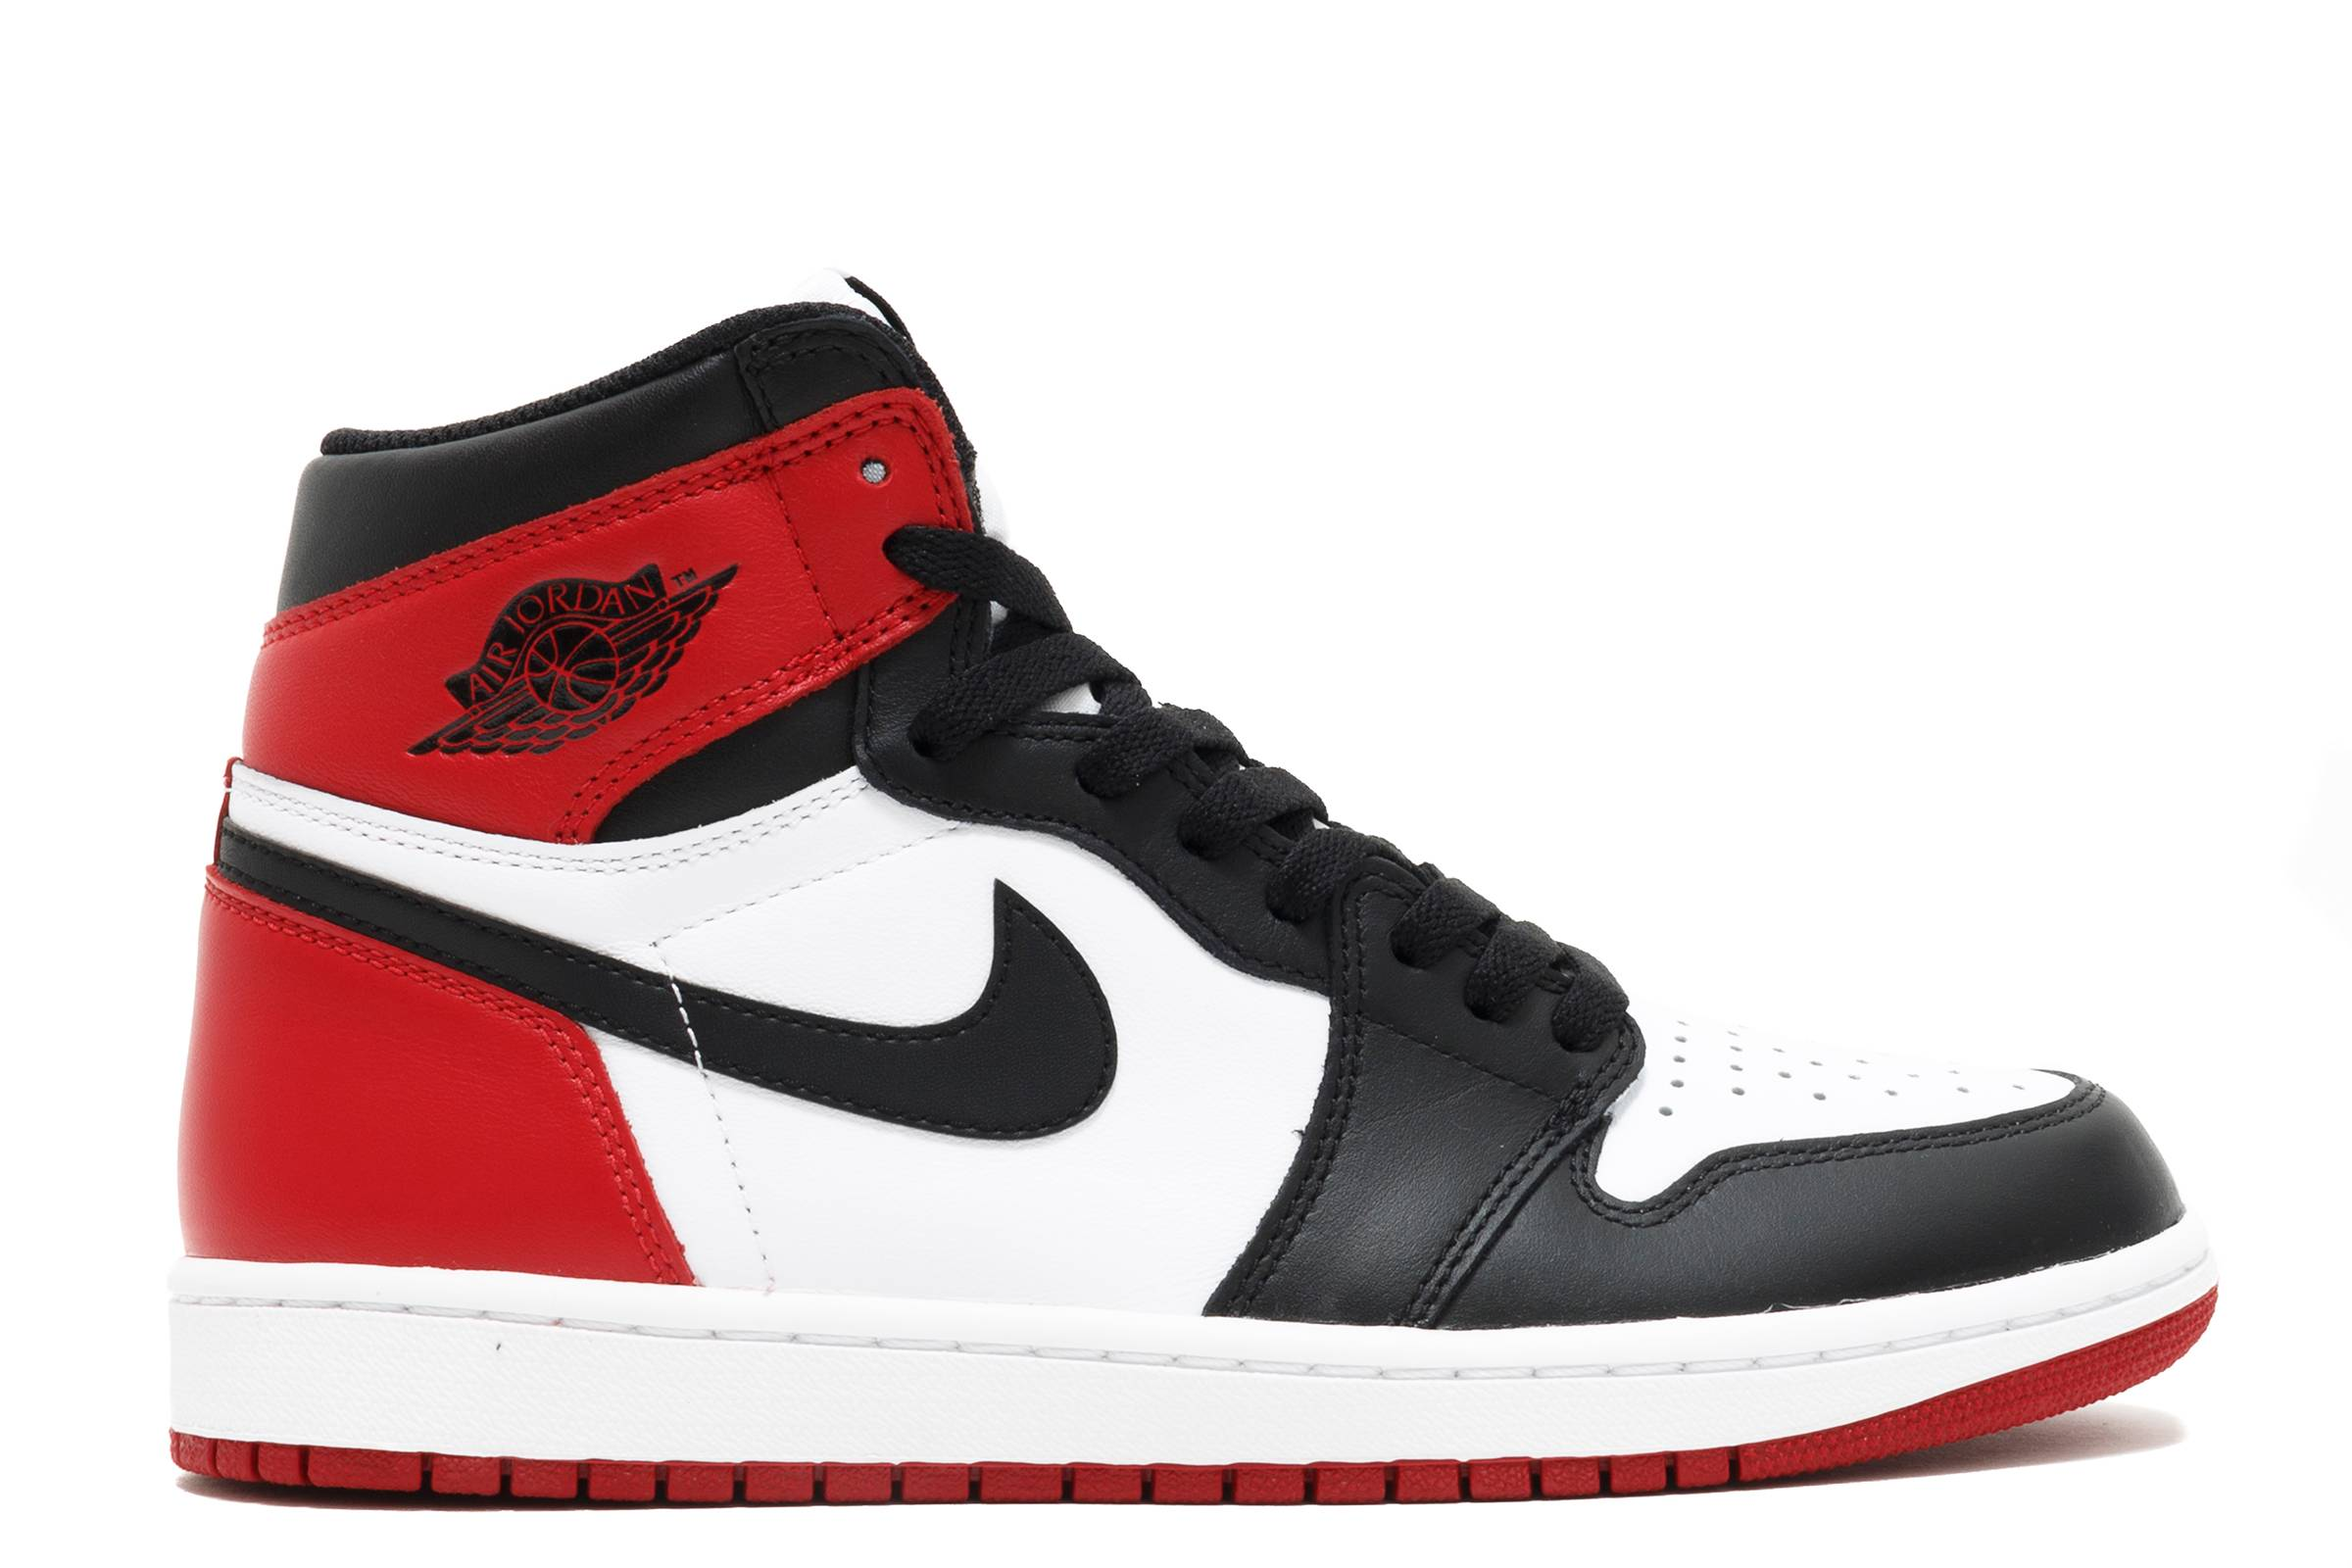 3e776dec0c3 The One That Started It All: A History of the Jordan 1 - Jordan 1 ...